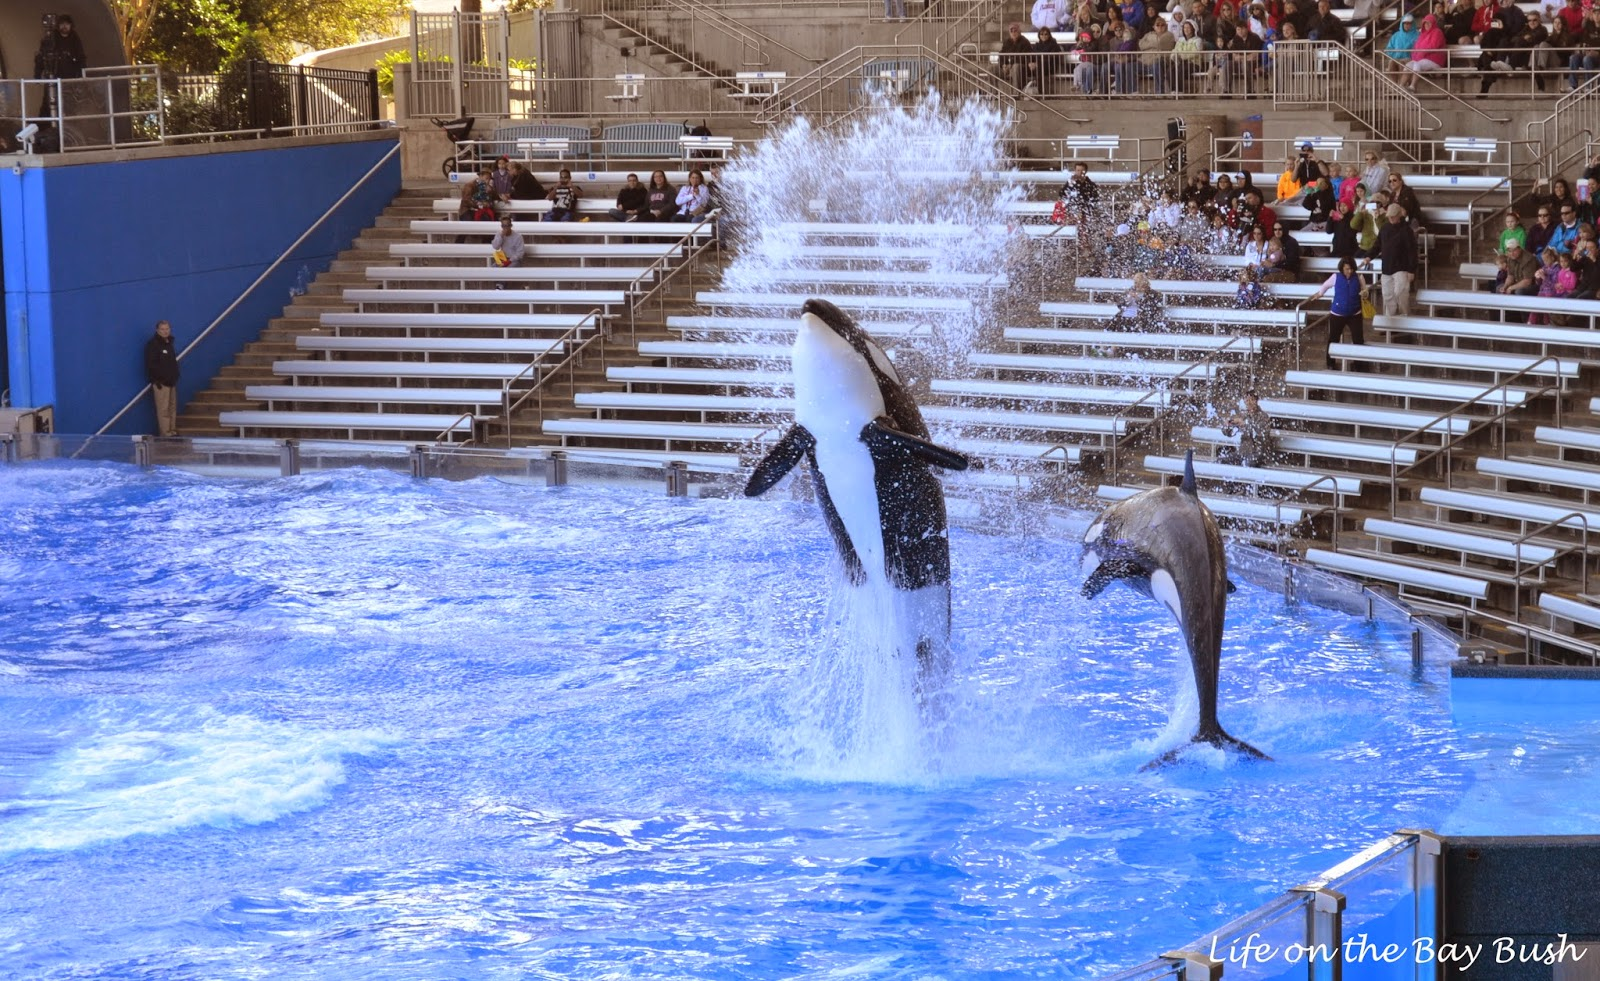 Killer whales at Seaworld Orlando